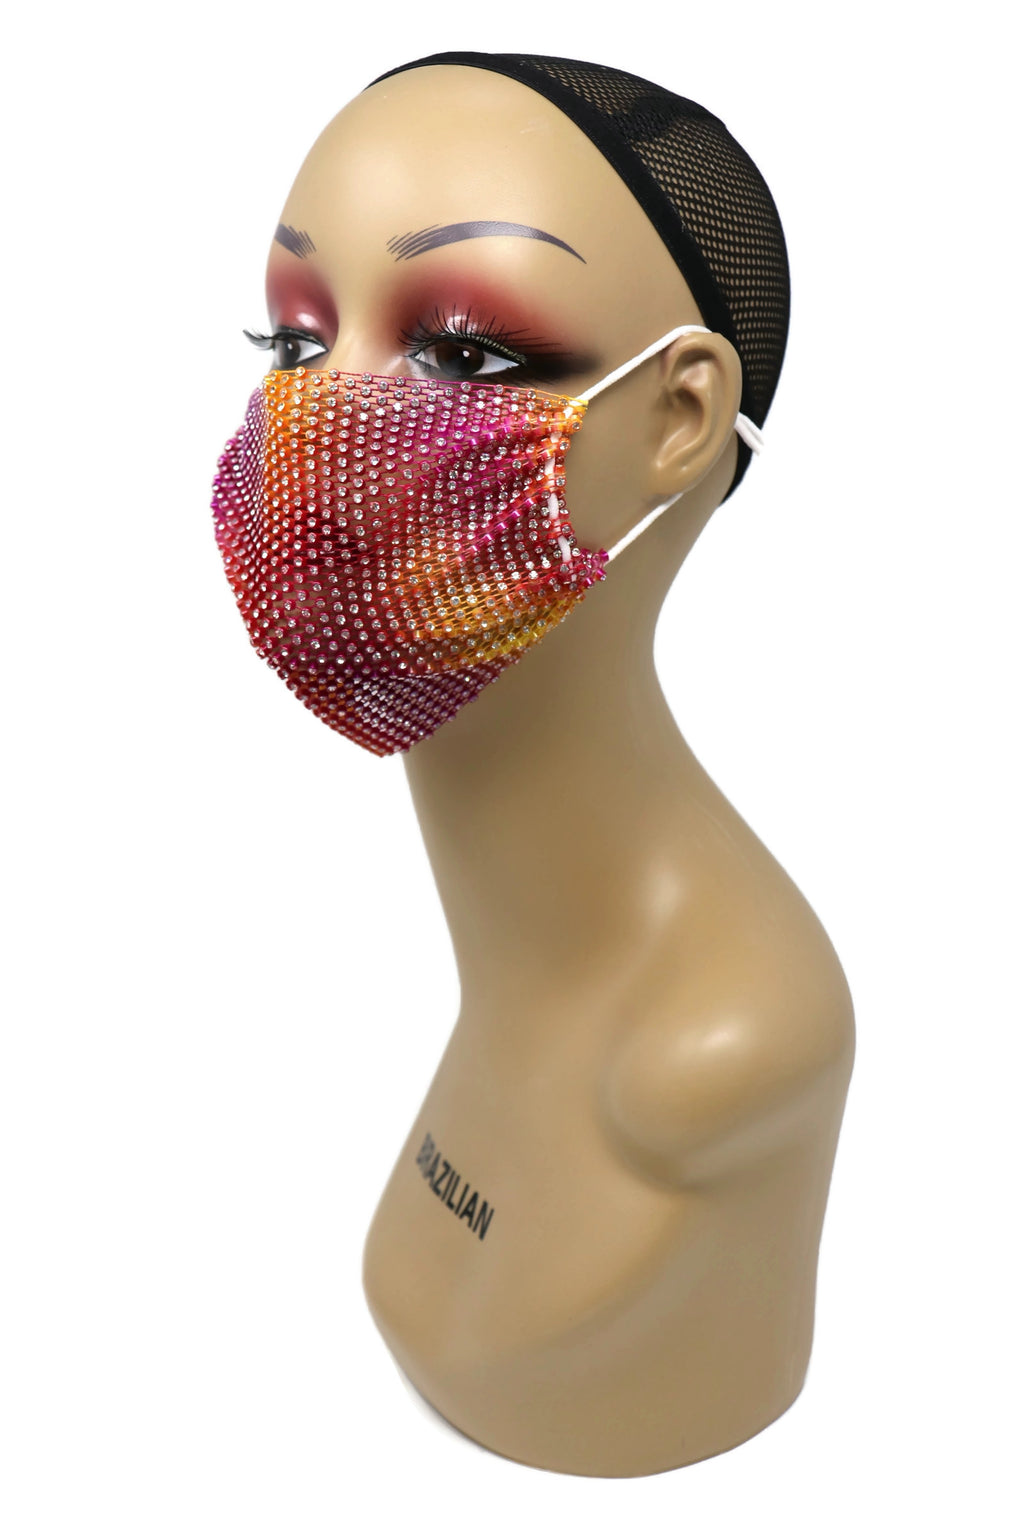 Grid Rhinestone Crystal Mask(Red Multi)